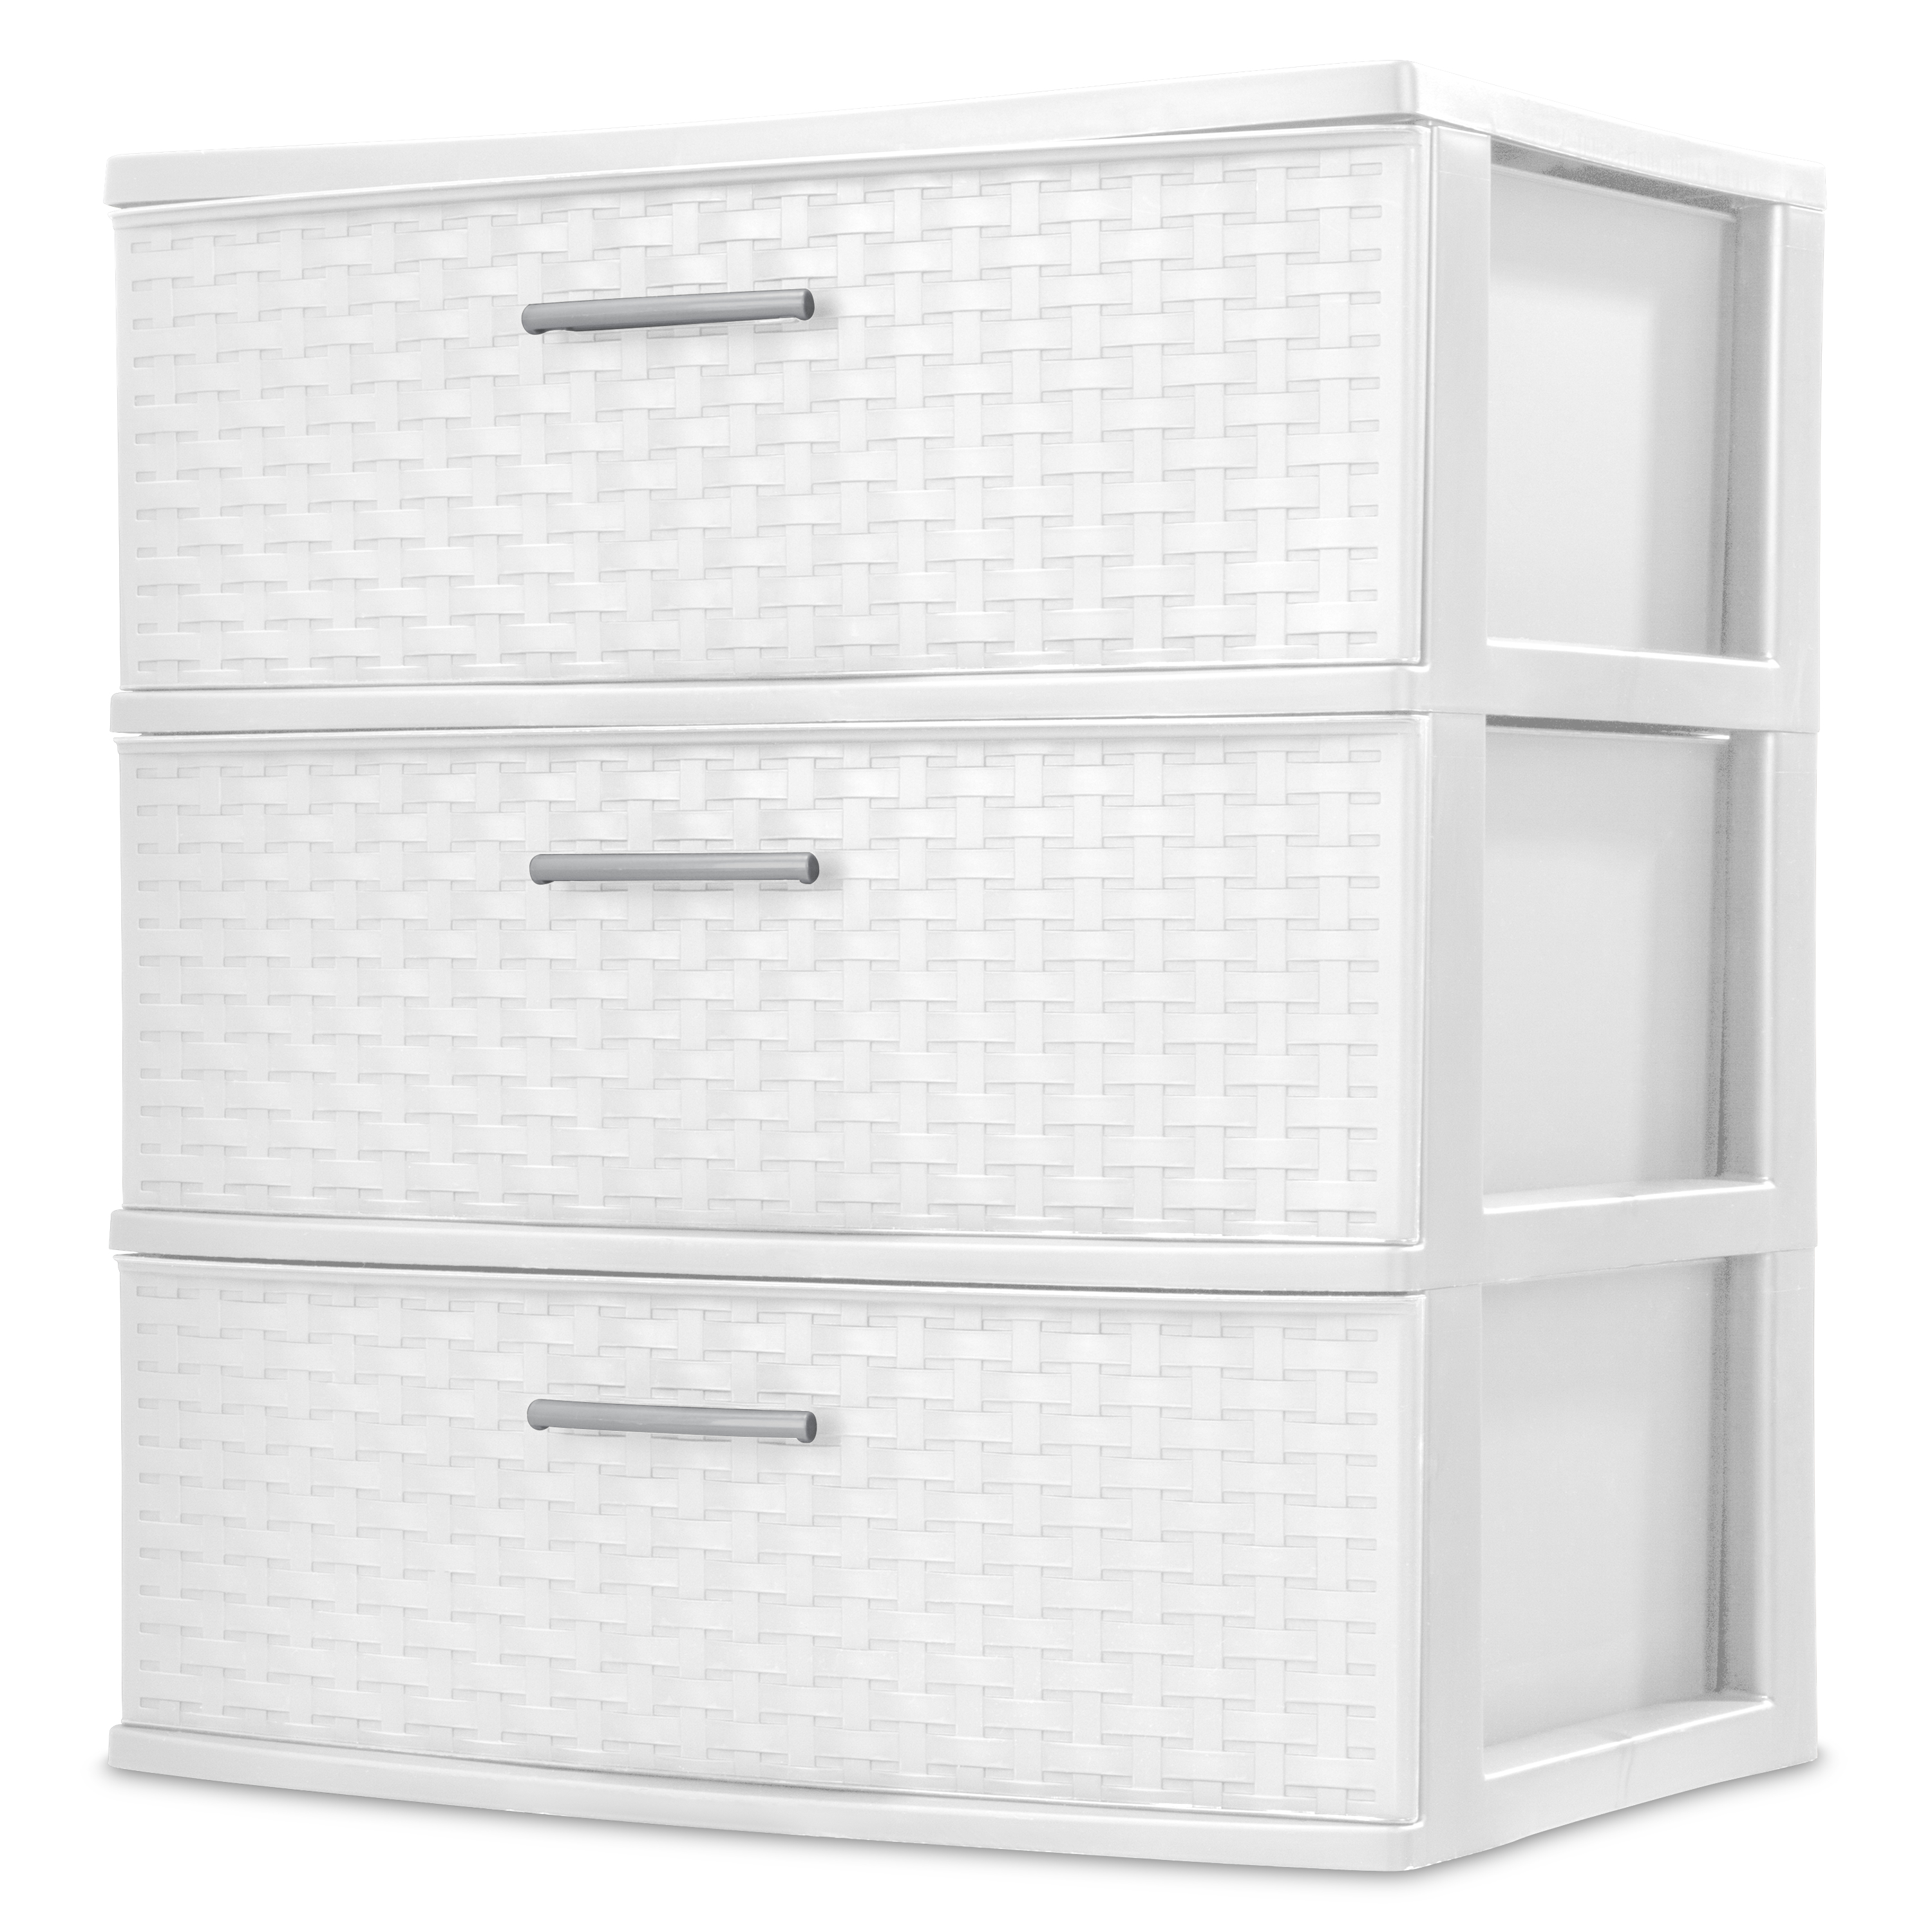 Sterilite 3 Drawer Wide Weave Tower, White